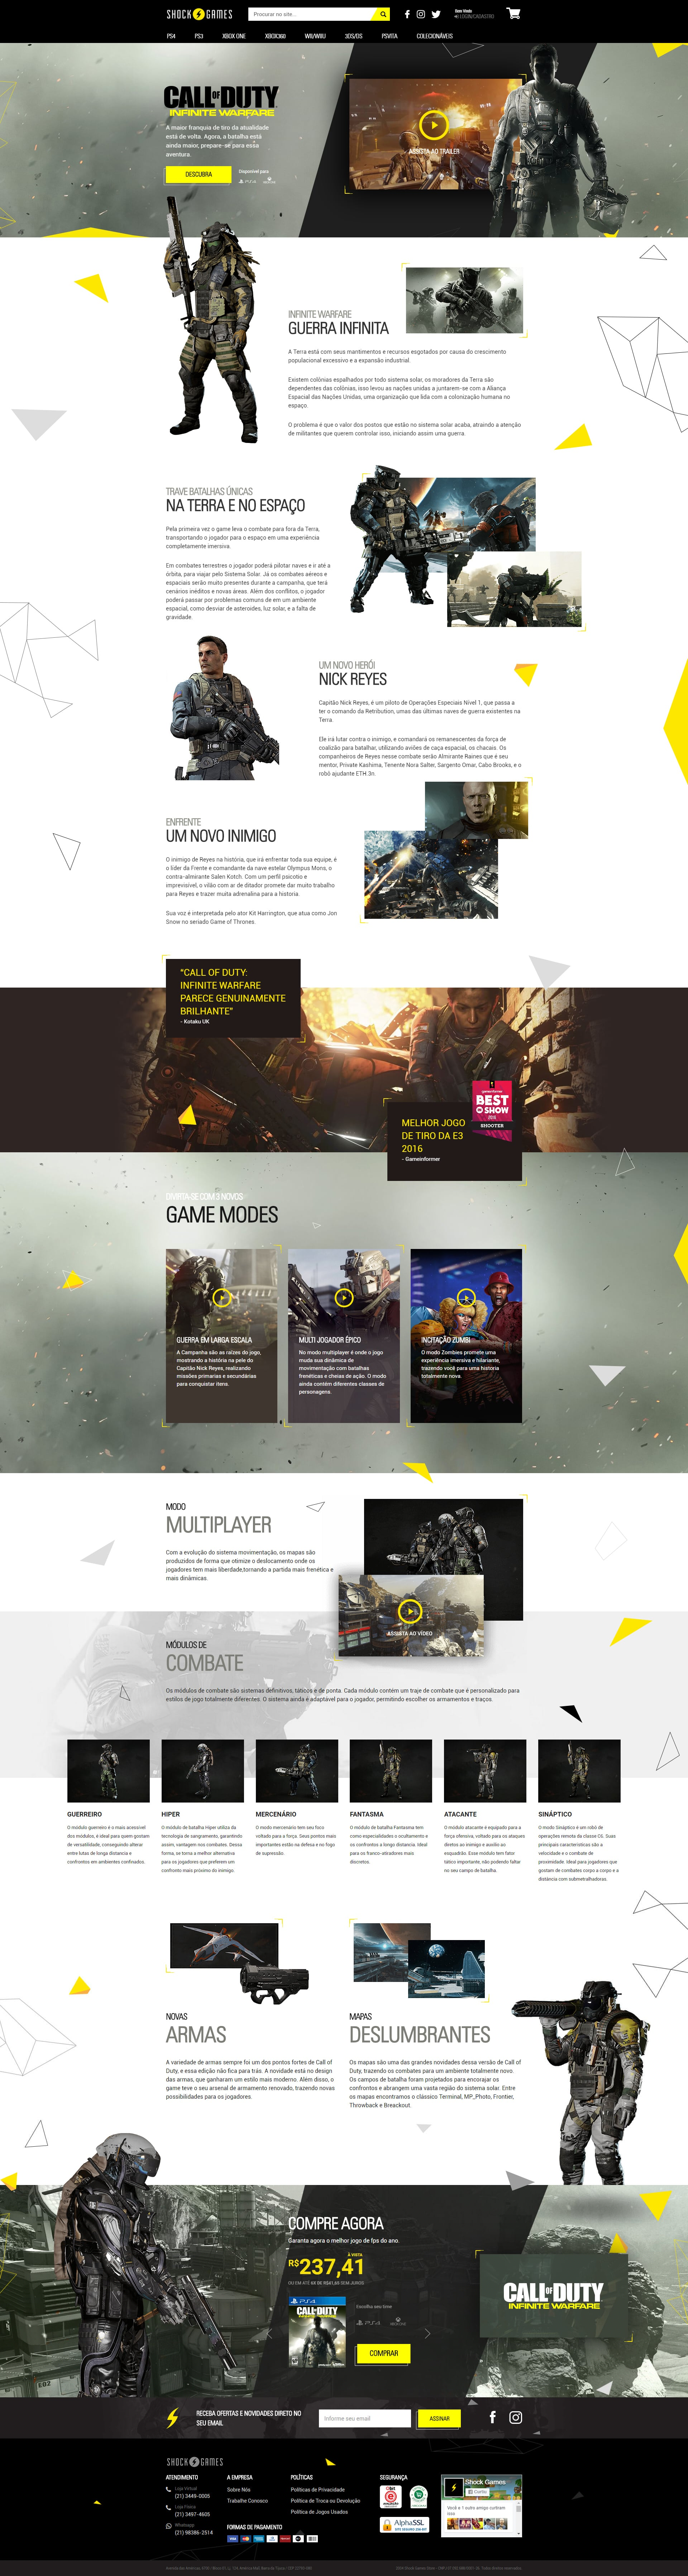 Call of Duty Landing Page by Rafael Oliveira